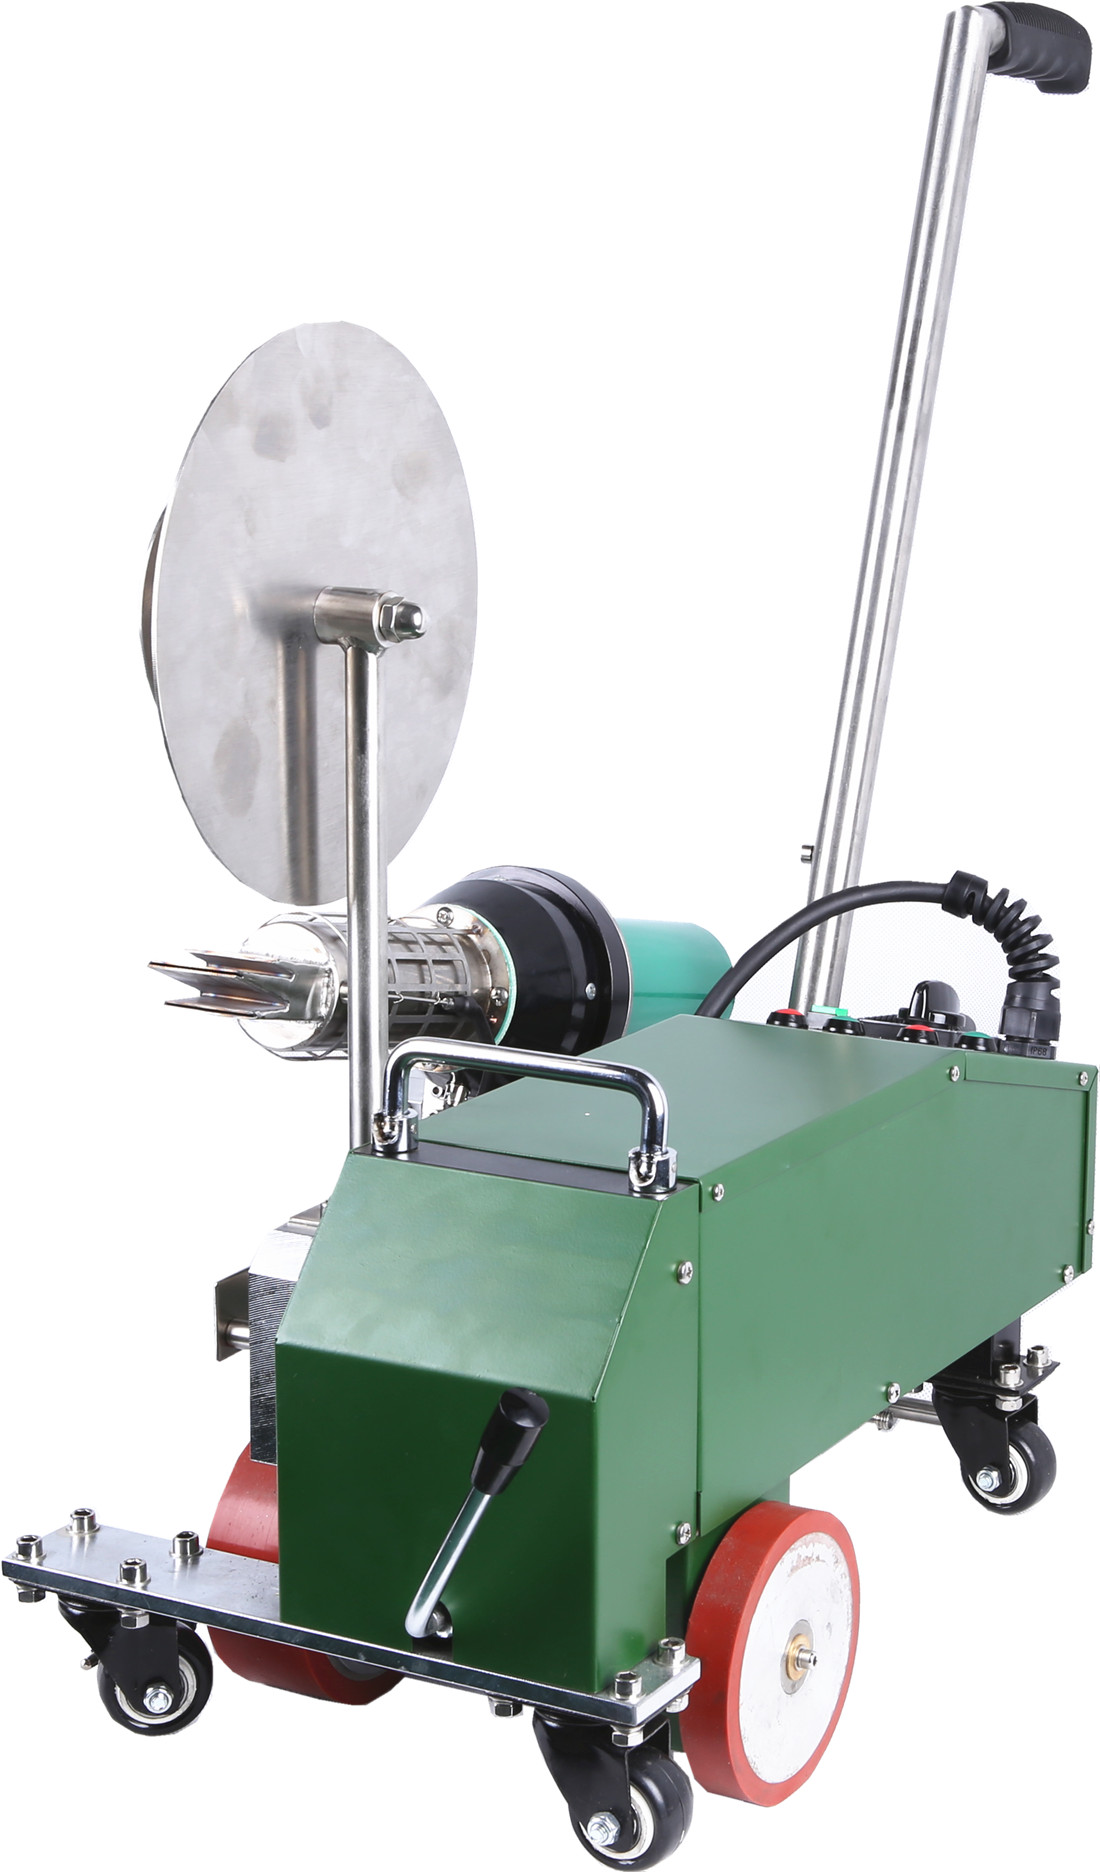 SWT-MAT2 Tape Welder for lorry covers or curtain siders